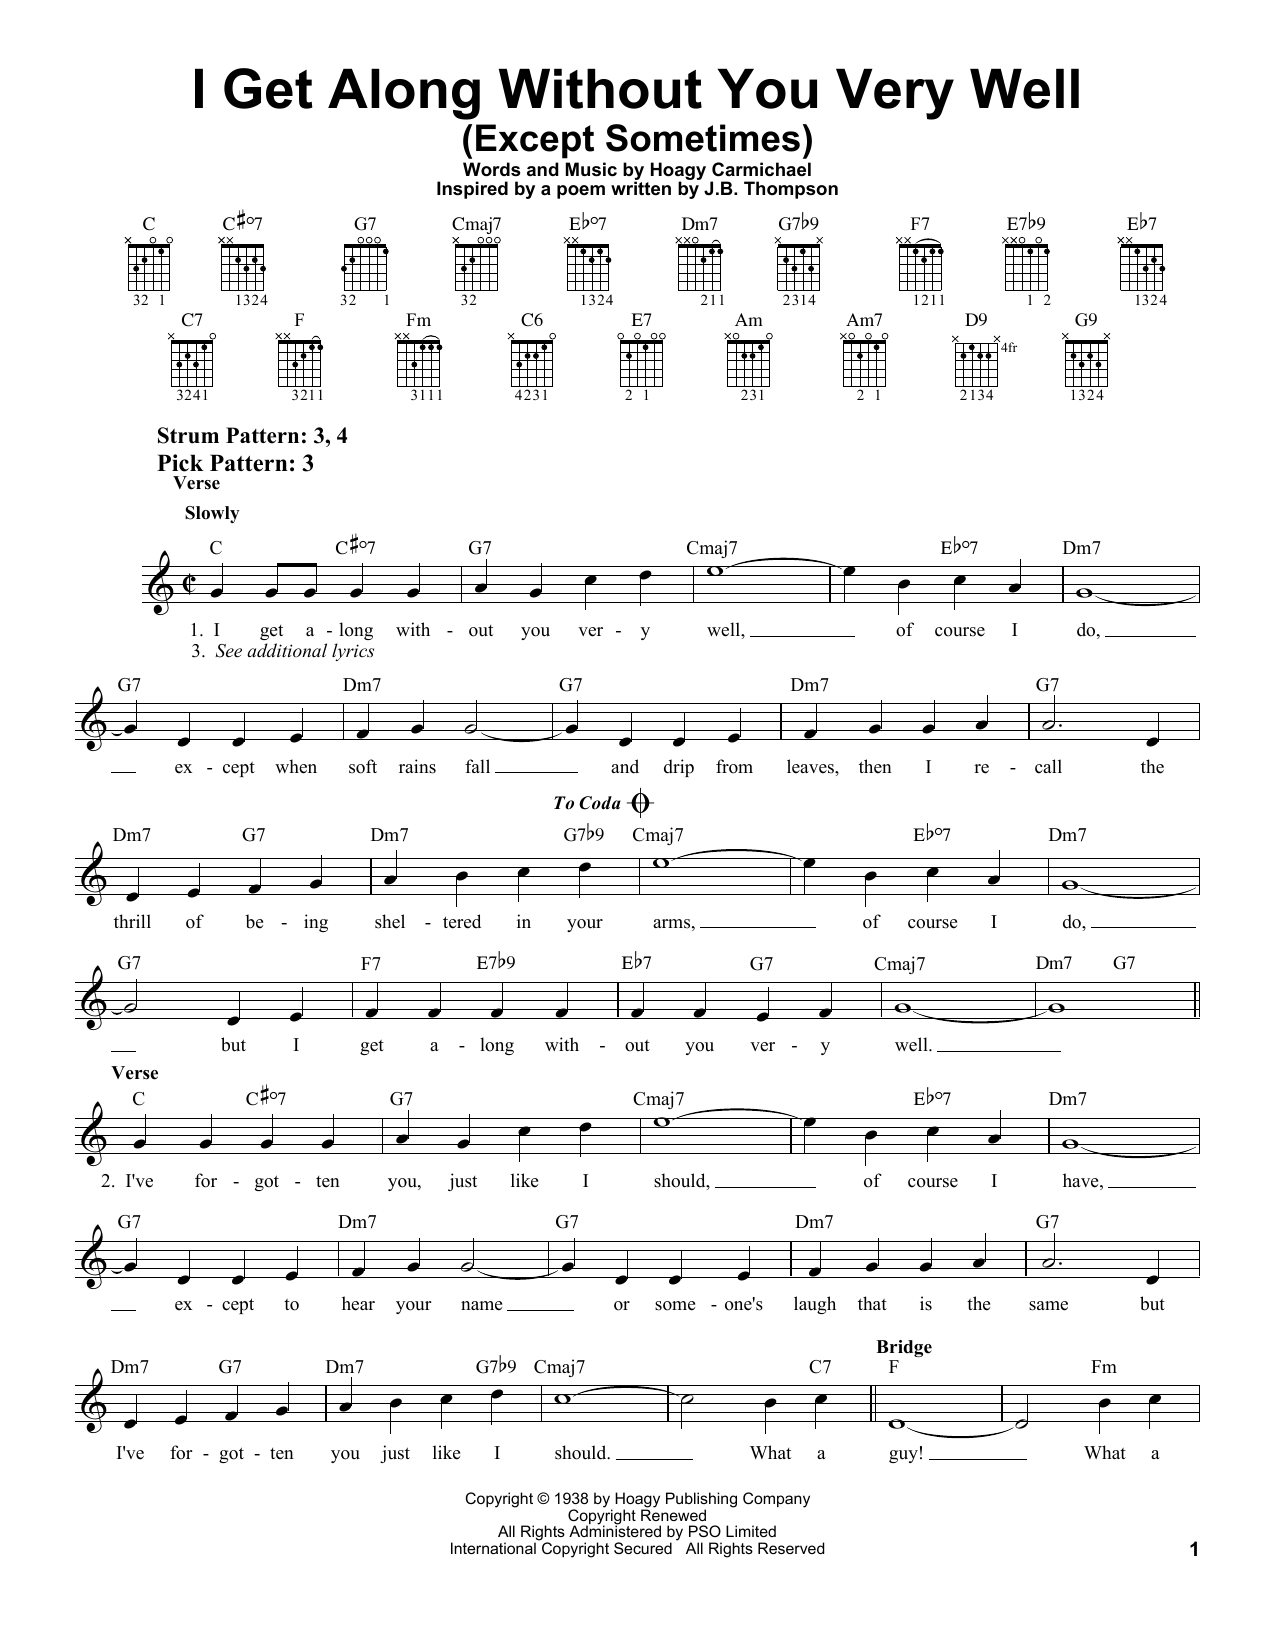 Hoagy Carmichael I Get Along Without You Very Well (Except Sometimes) sheet music notes printable PDF score